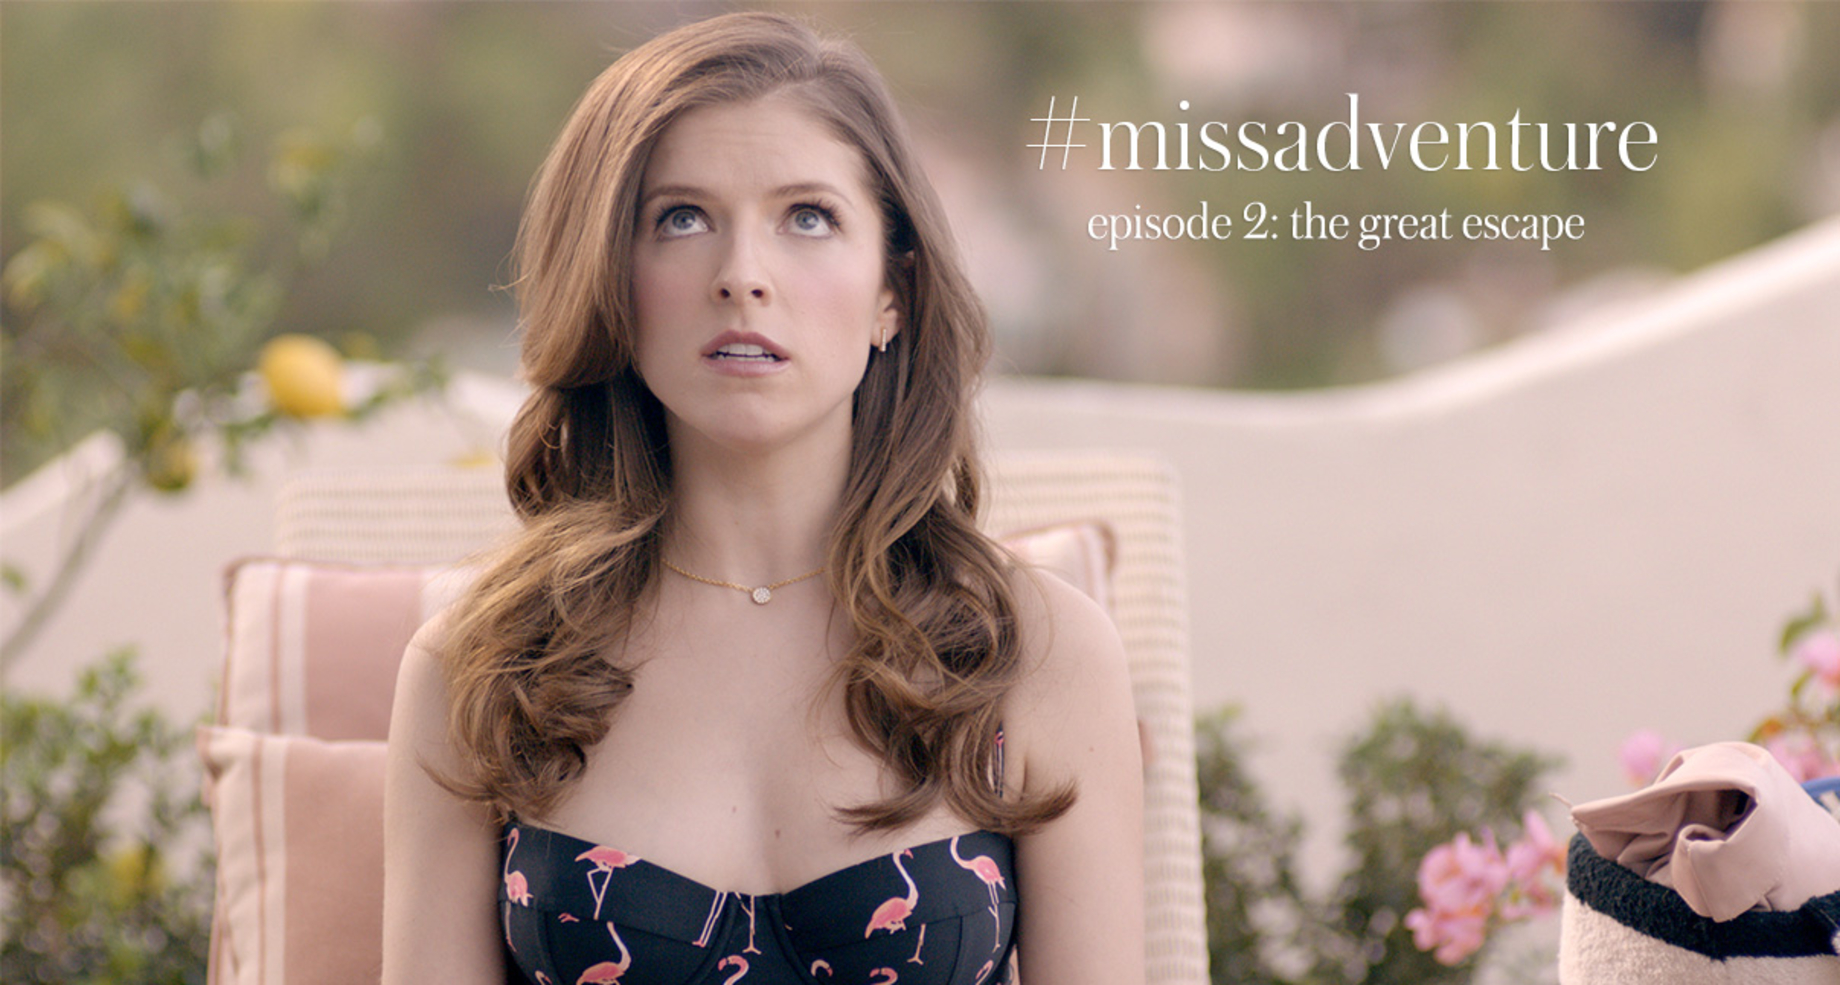 Kate Spade New York Releases Episode 2 of the #MissAdventure Video Series, Staring Anna Kendrick